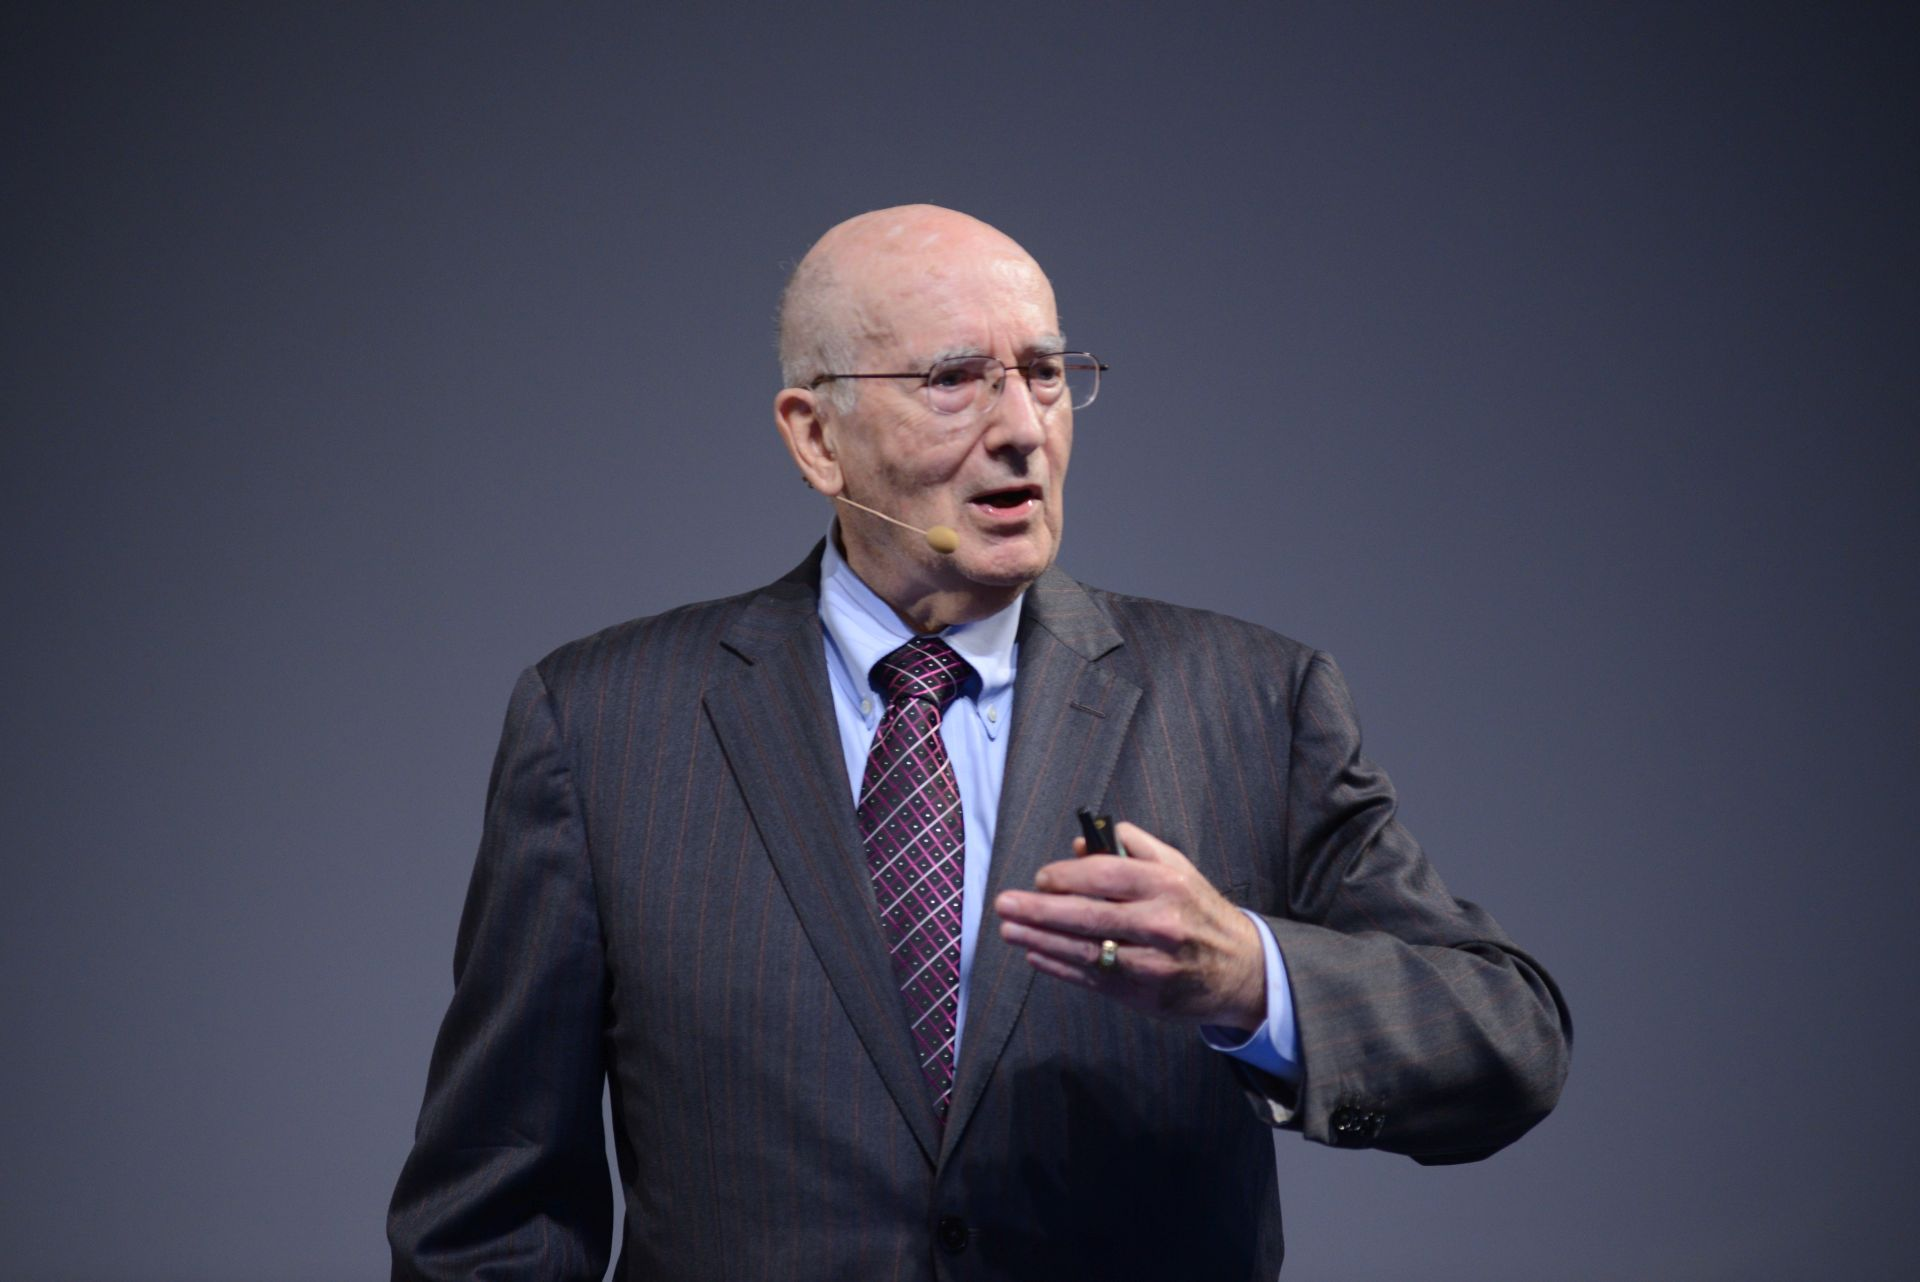 As Lições de marketing de Kotler